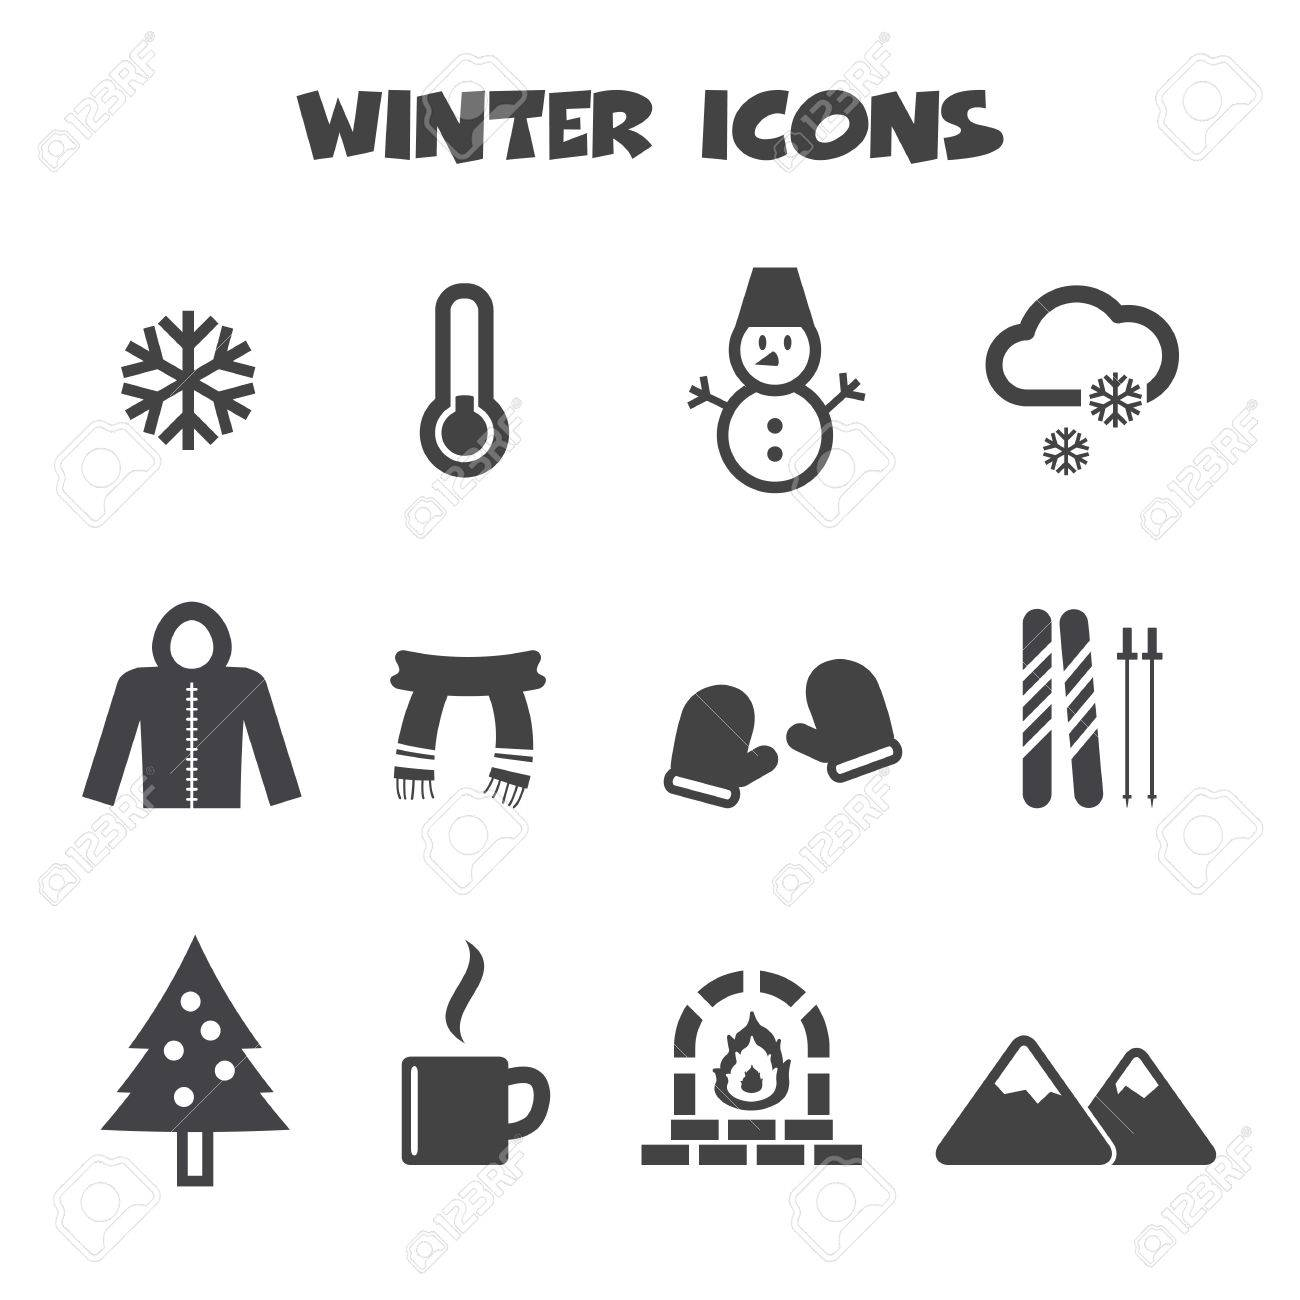 Winter icons symbols royalty free cliparts vectors and stock winter icons symbols stock vector 26618704 biocorpaavc Images